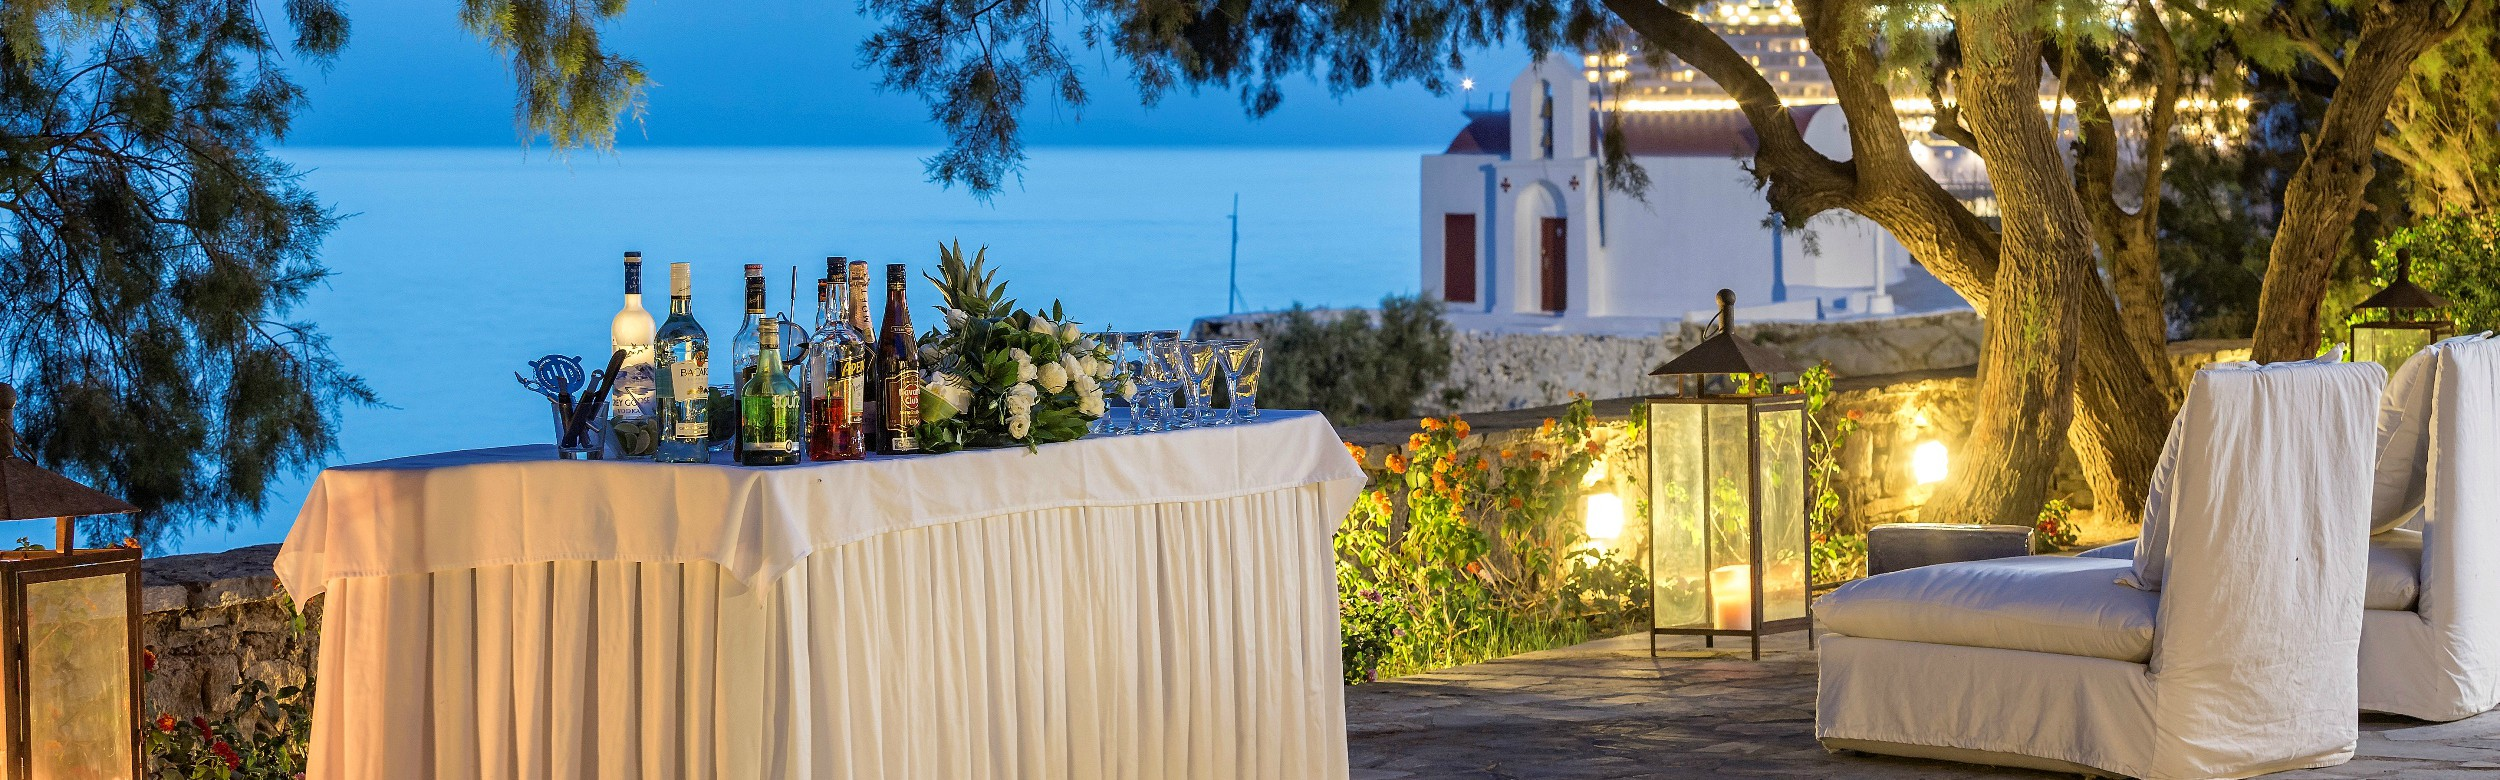 _ Mykonos_Theoxenia_-_Wedding_dinner_3.jpg